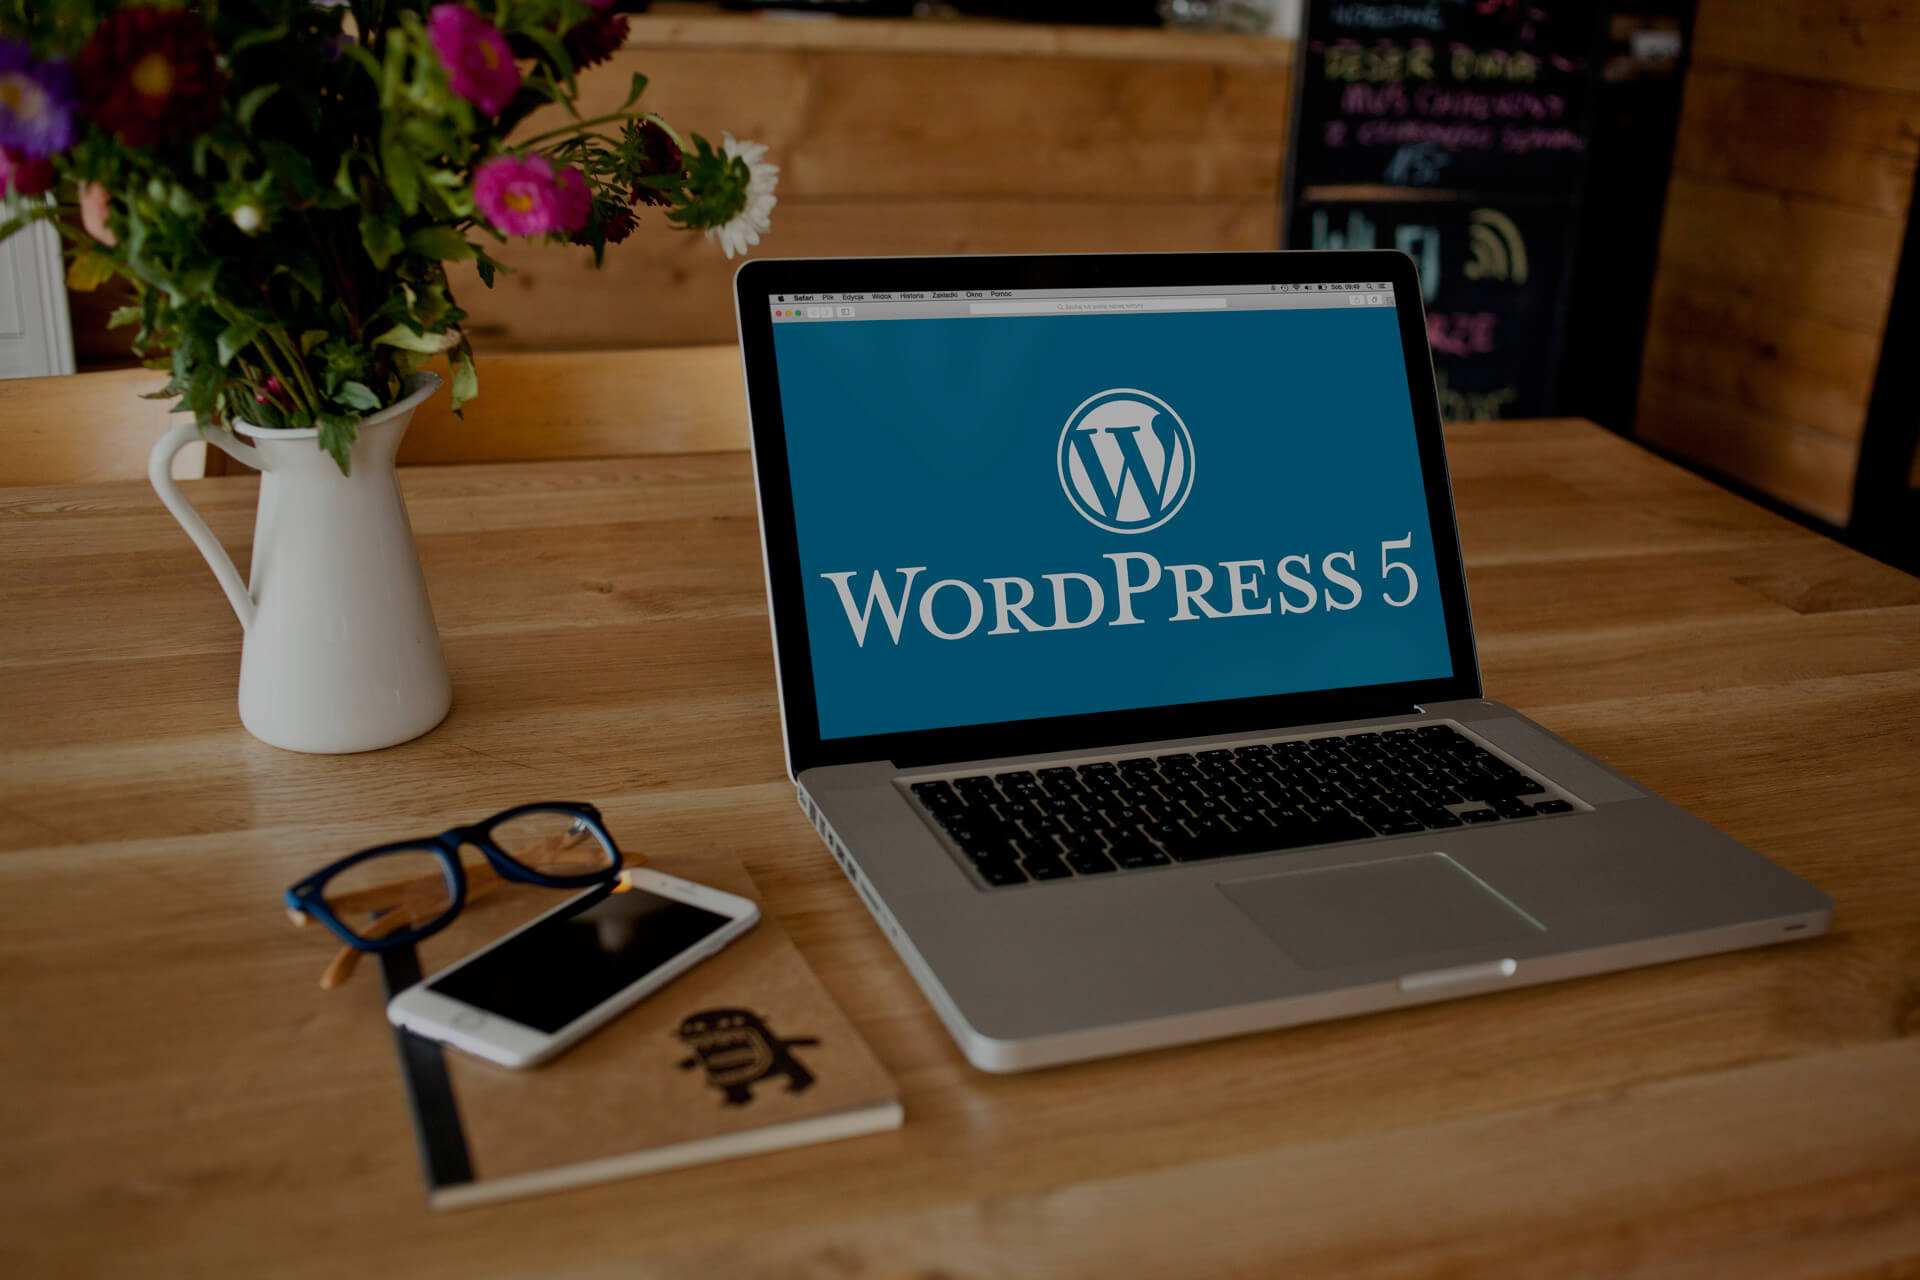 Should I update my site to WordPress 5.0: Key consideration before updating